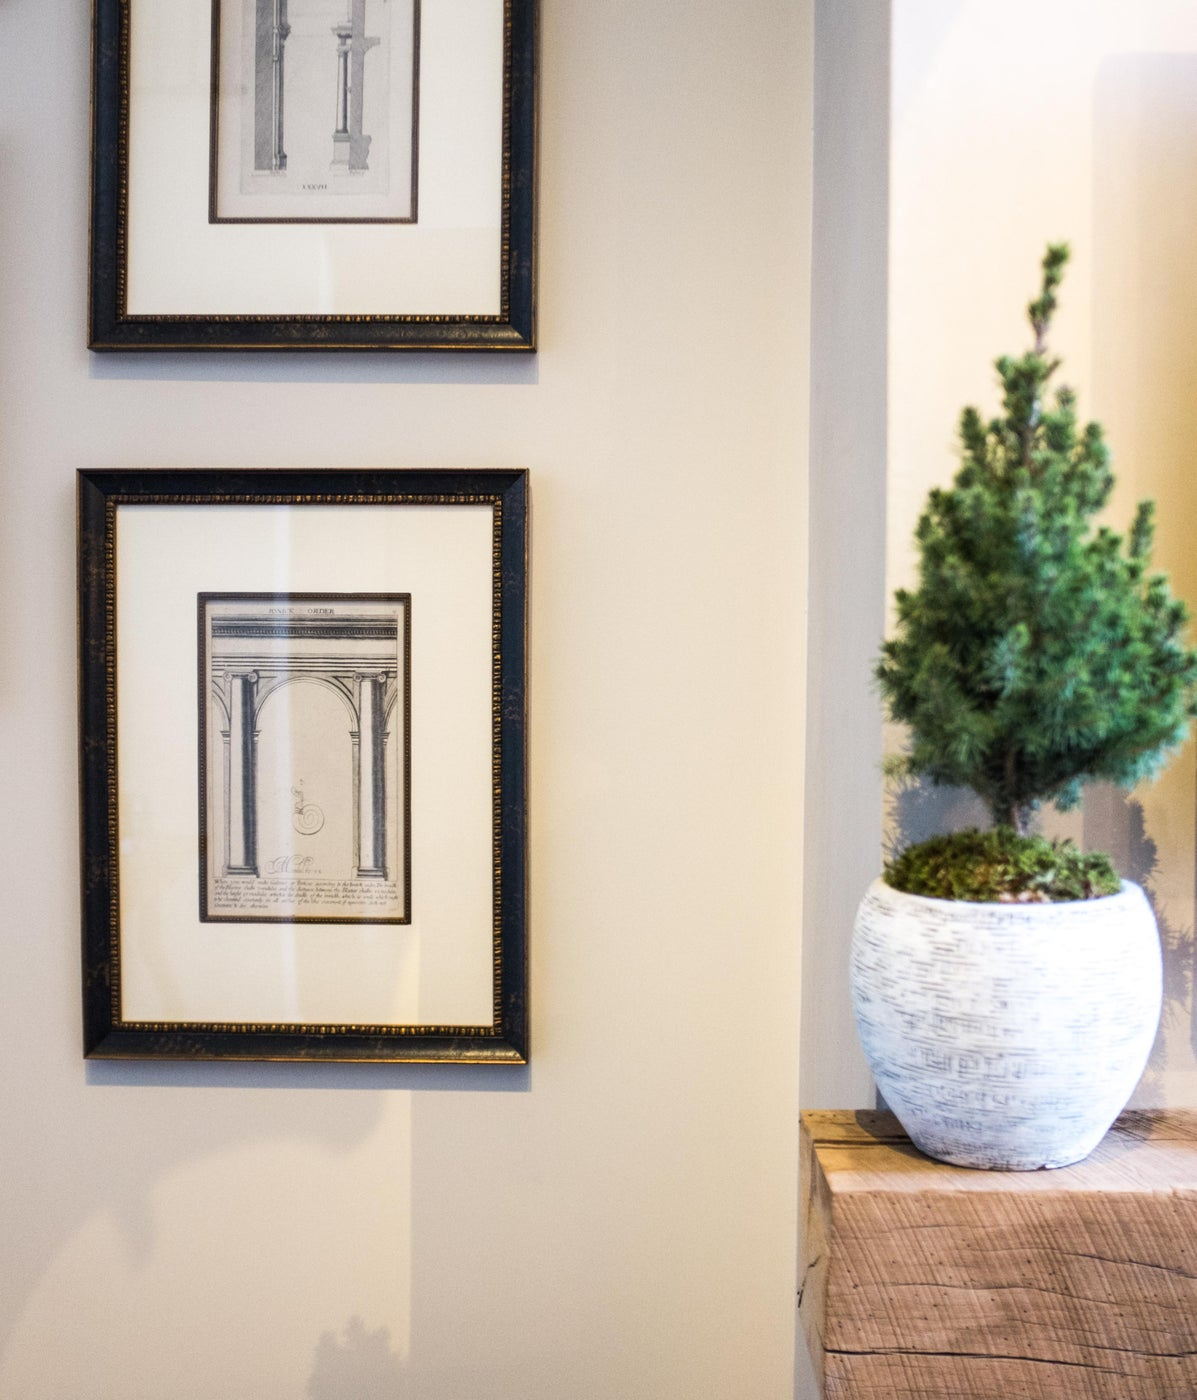 Edge of the mantel and architectural renderings